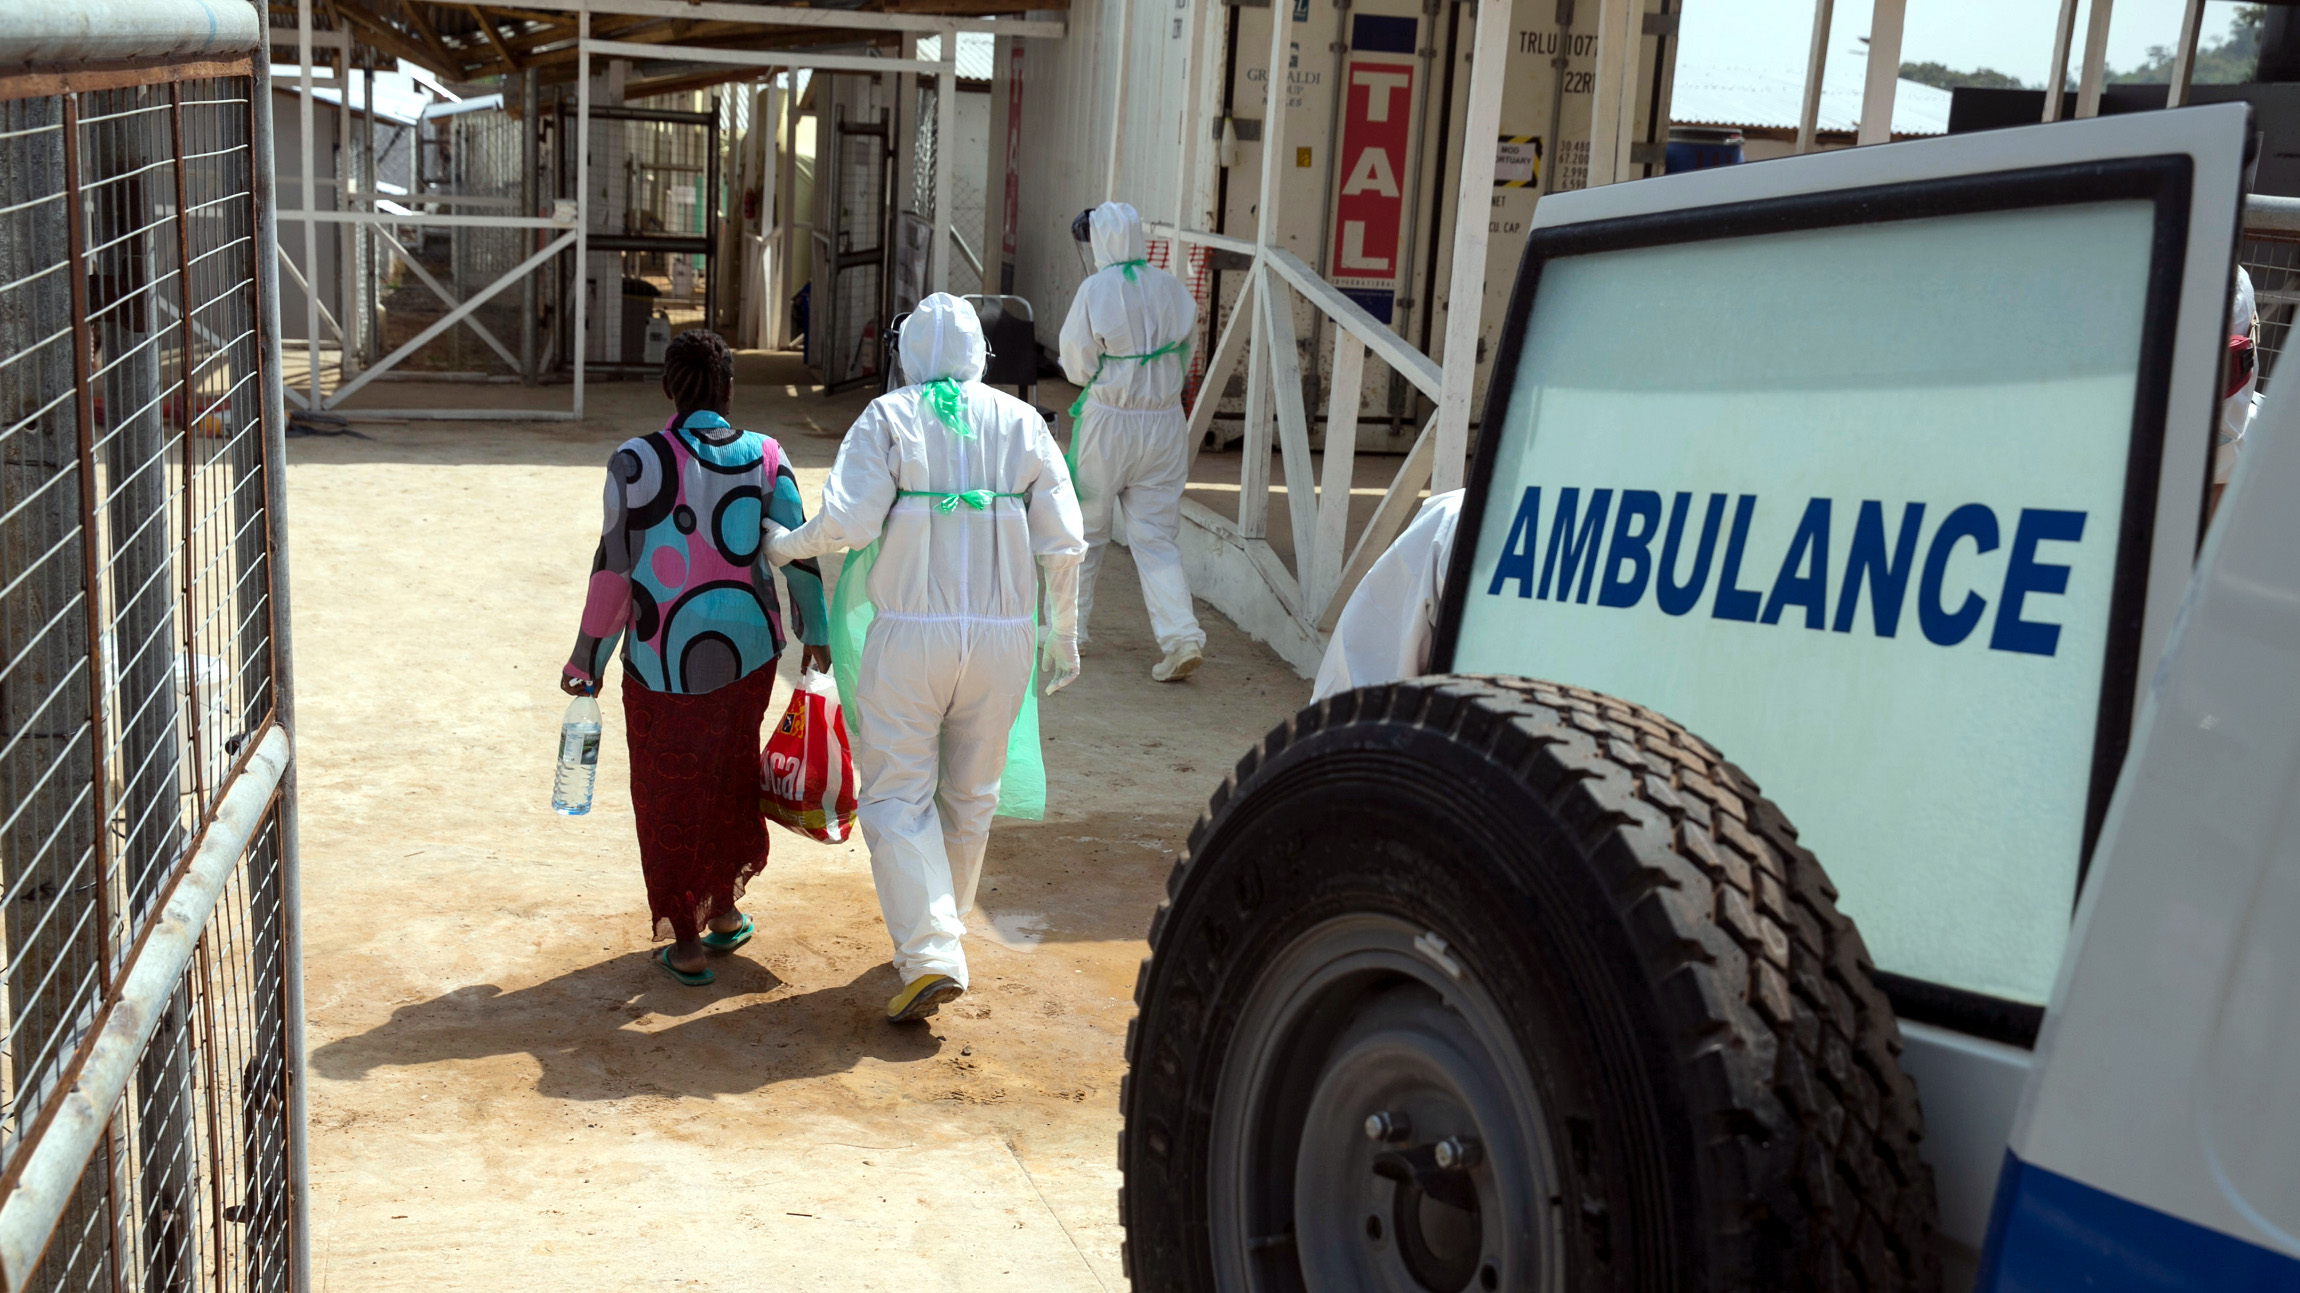 A health worker escorts a newly admitted Ebola patient in to the Kerry town Ebola treatment centre outside Freetown December 22, 2014.